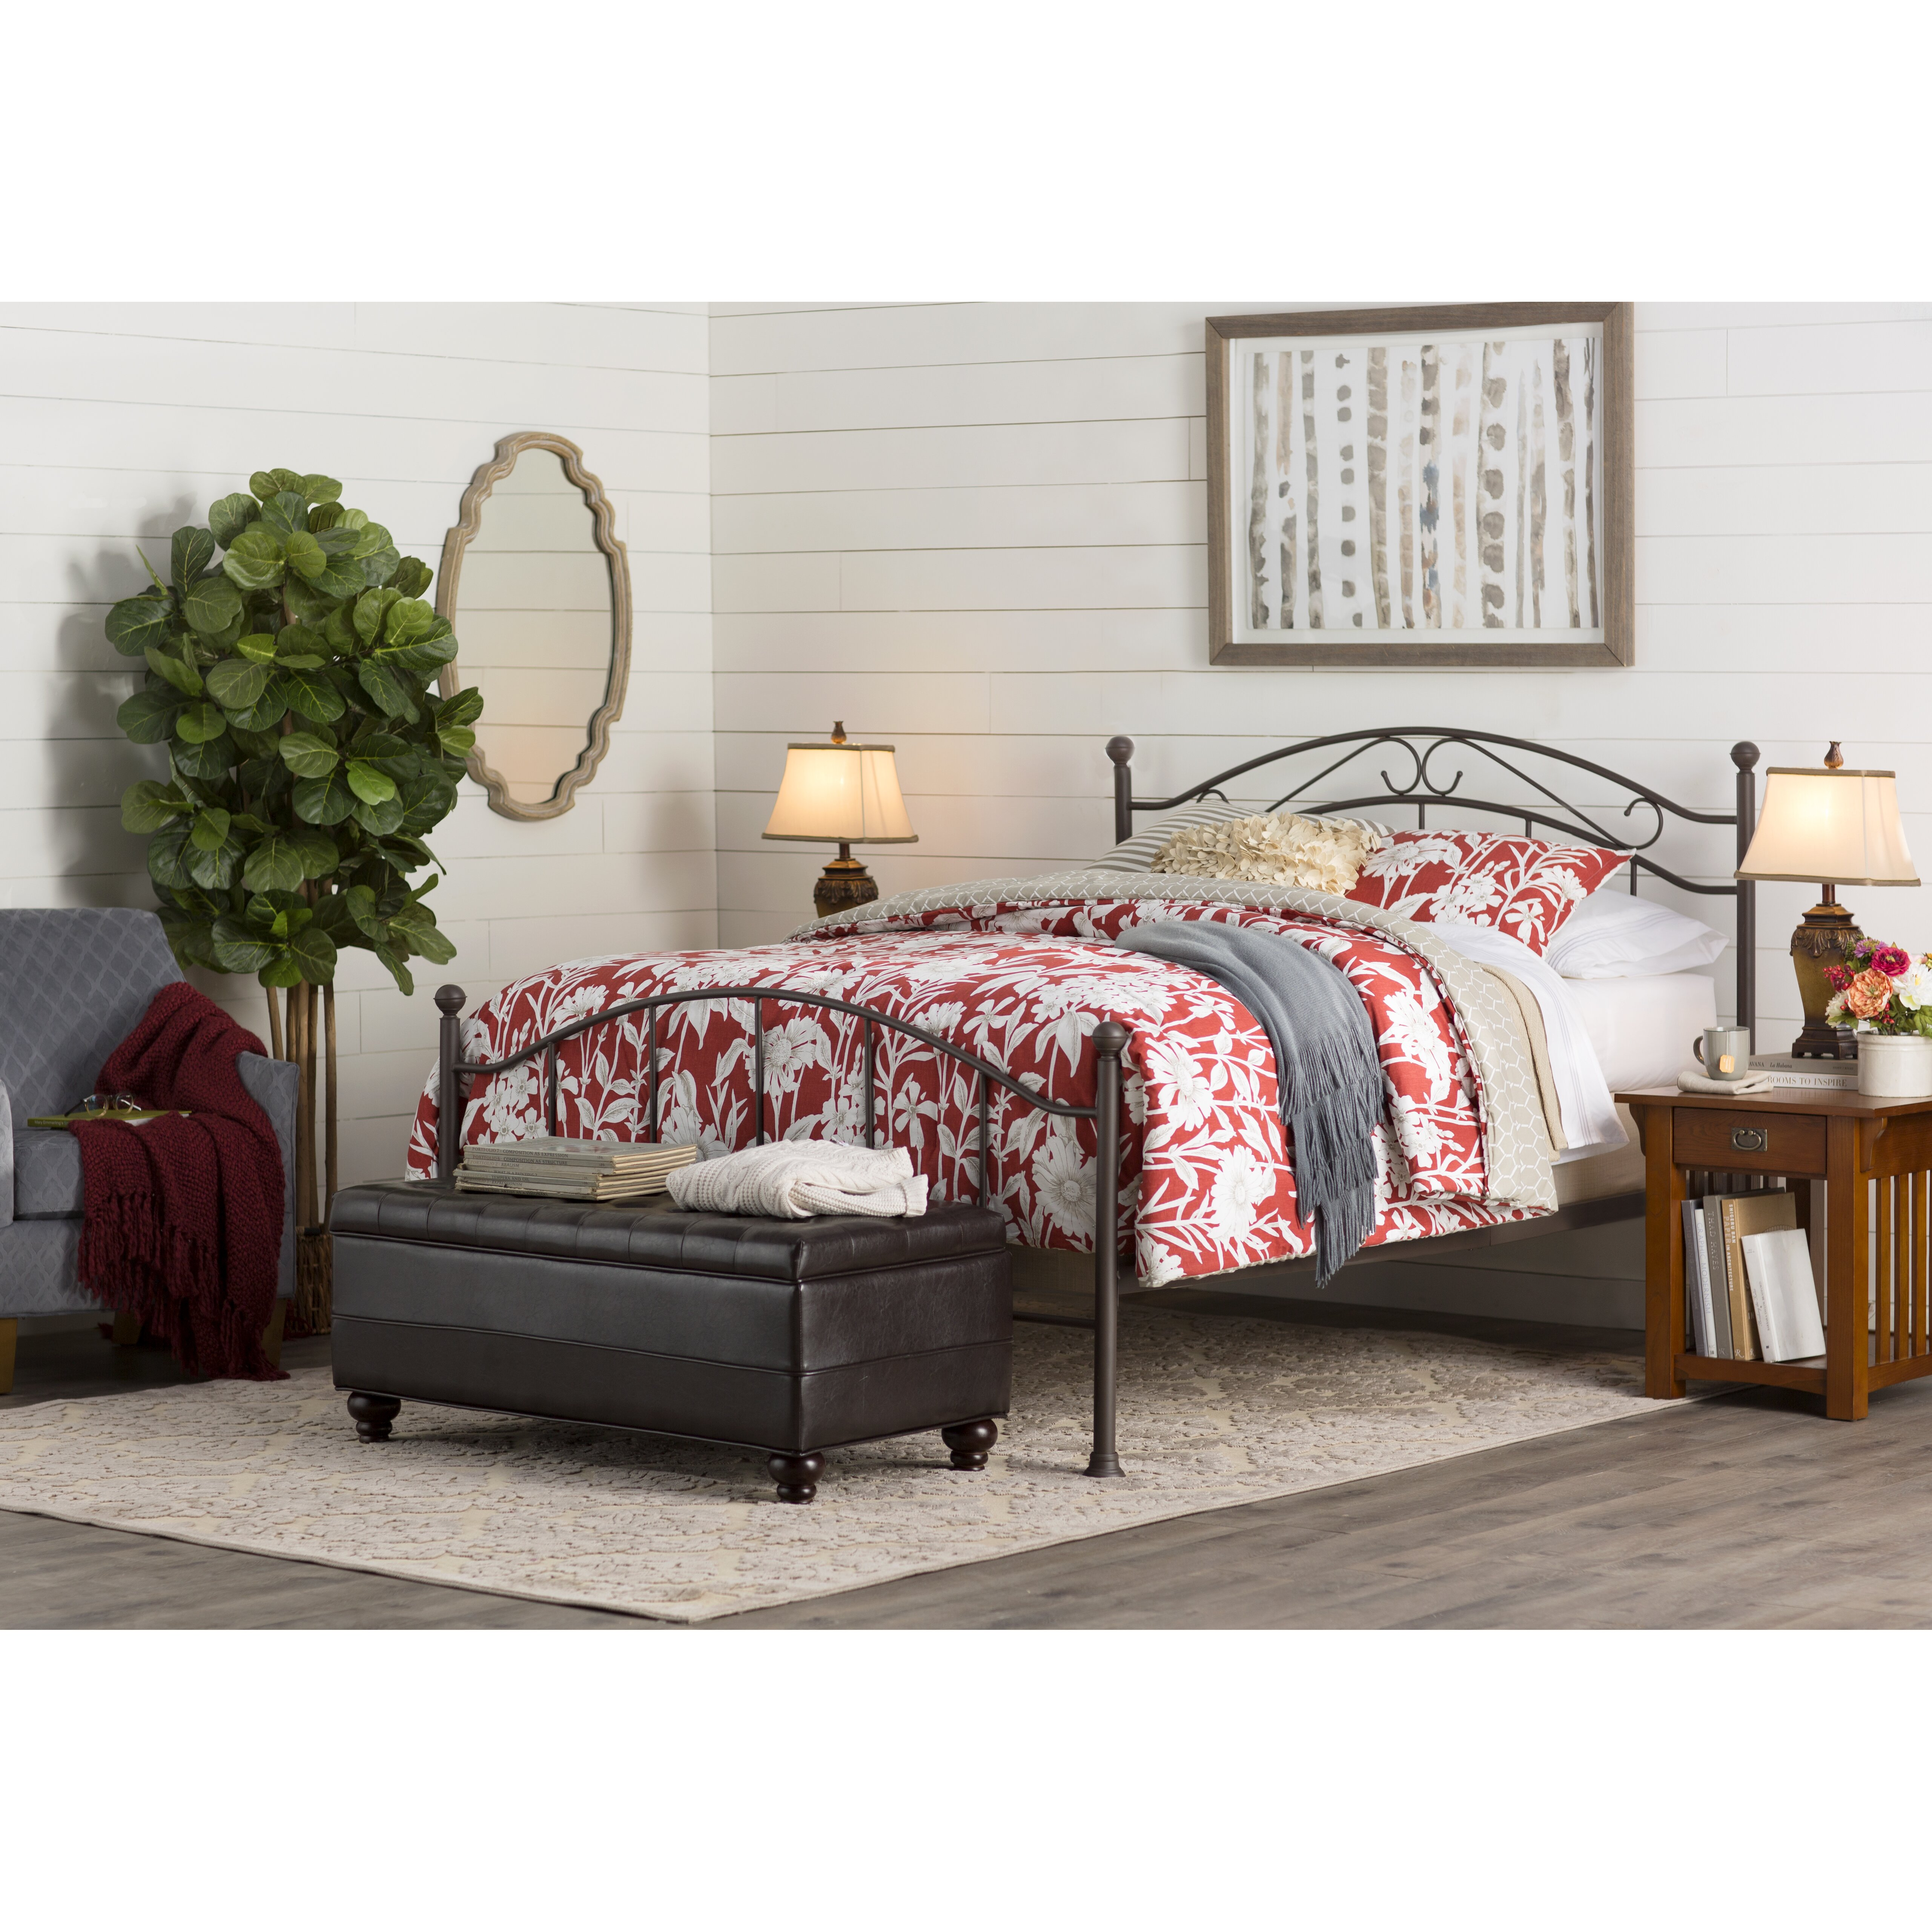 Three Posts Queen Four Poster Bed Reviews Wayfair